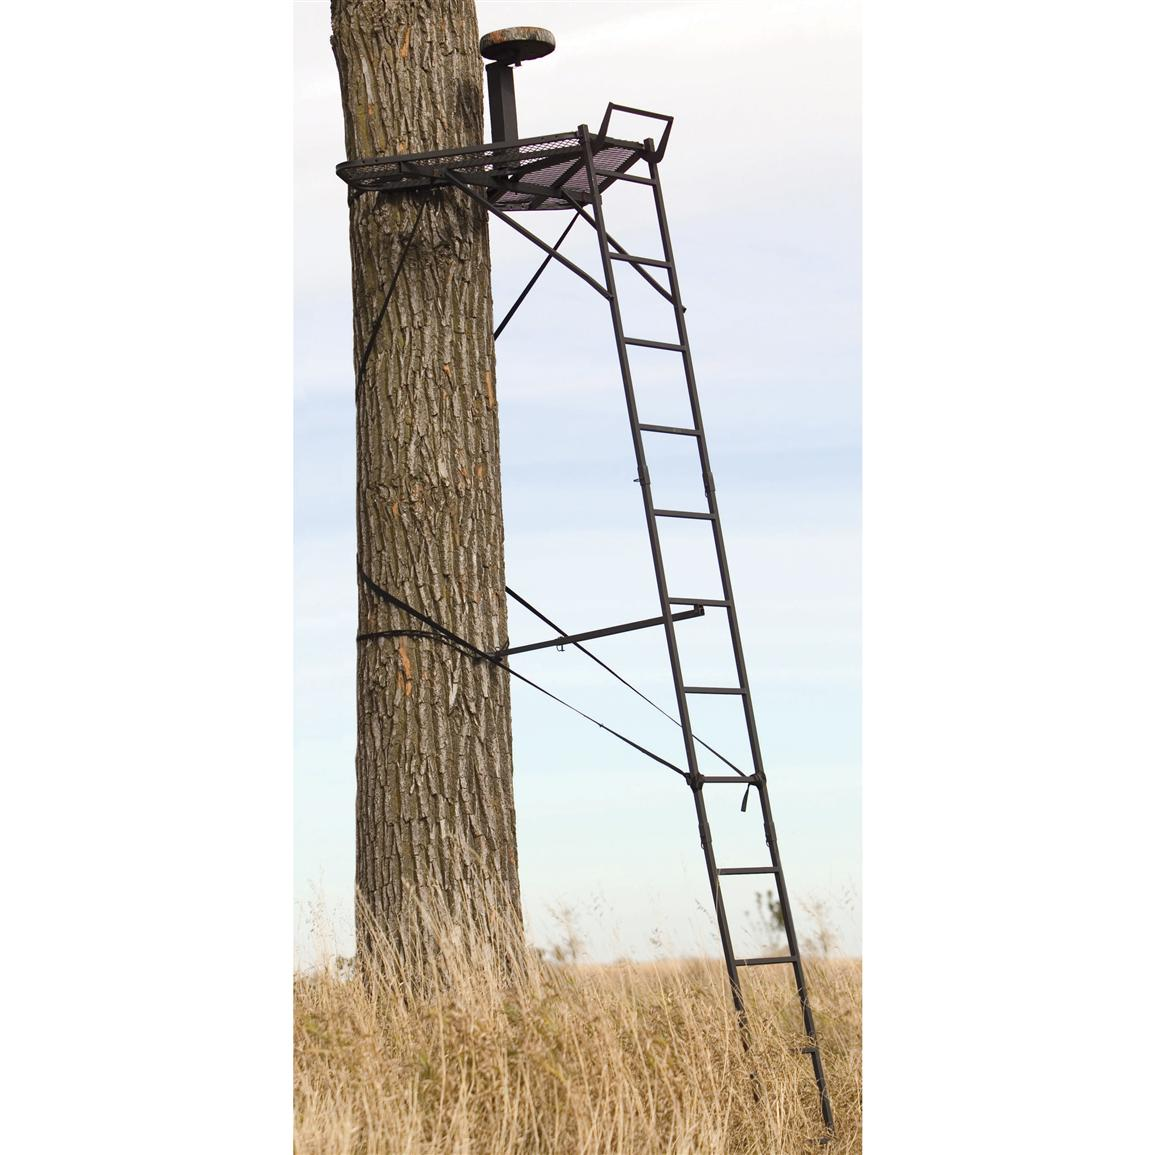 Big Game® The Ultra-View™ Ladder Tree Stand